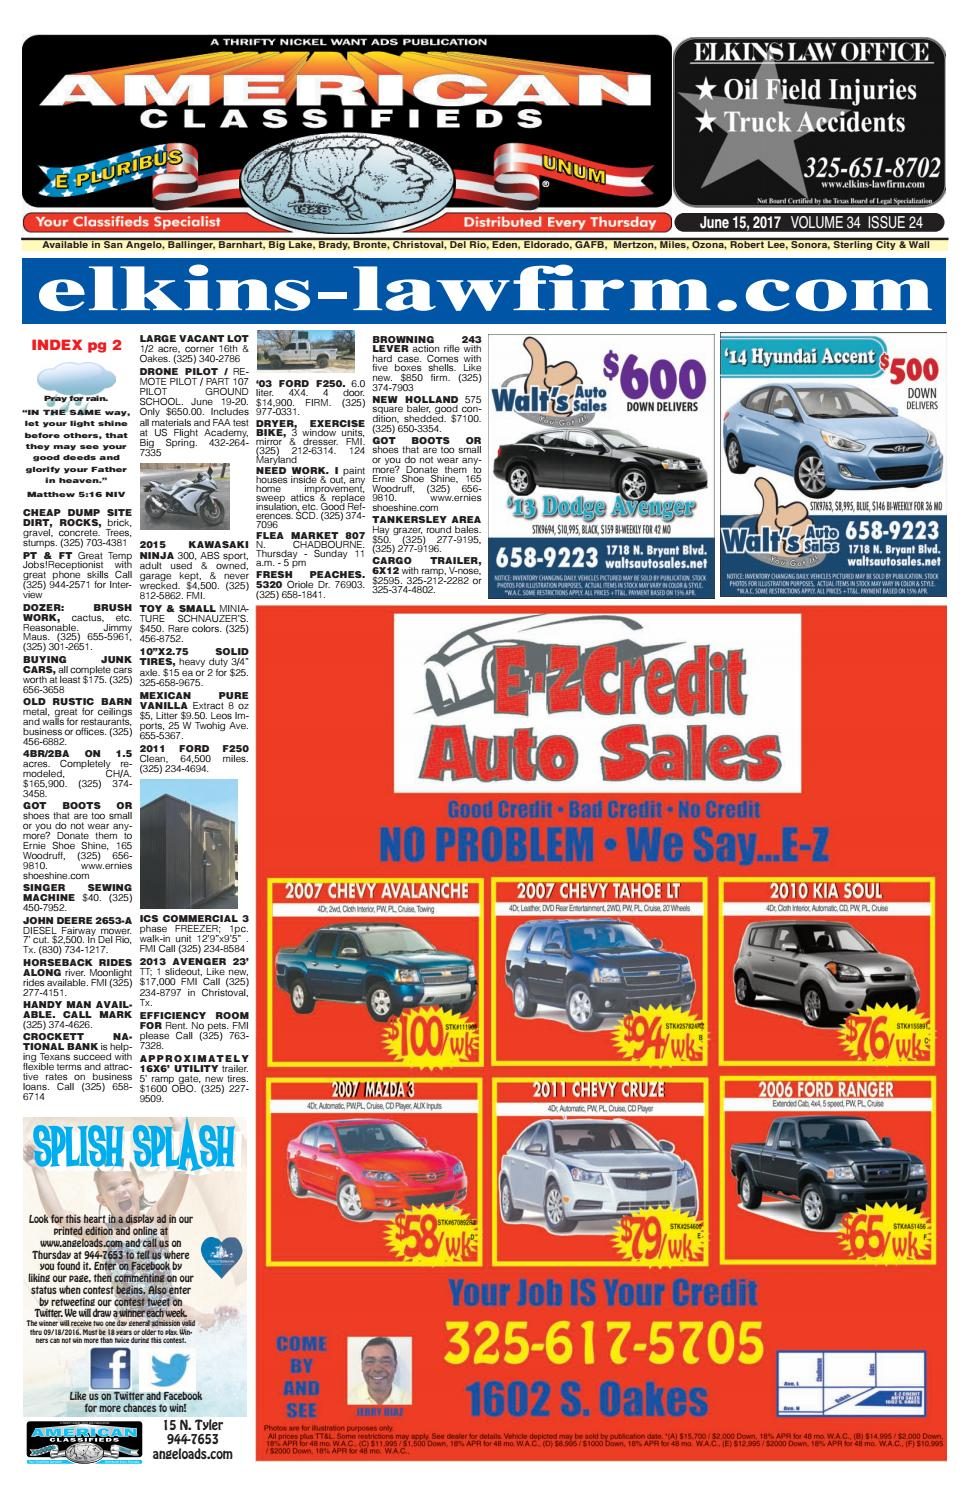 San angelo american classifieds 061517 by san angelo american san angelo american classifieds 061517 by san angelo american classifieds issuu fandeluxe Images